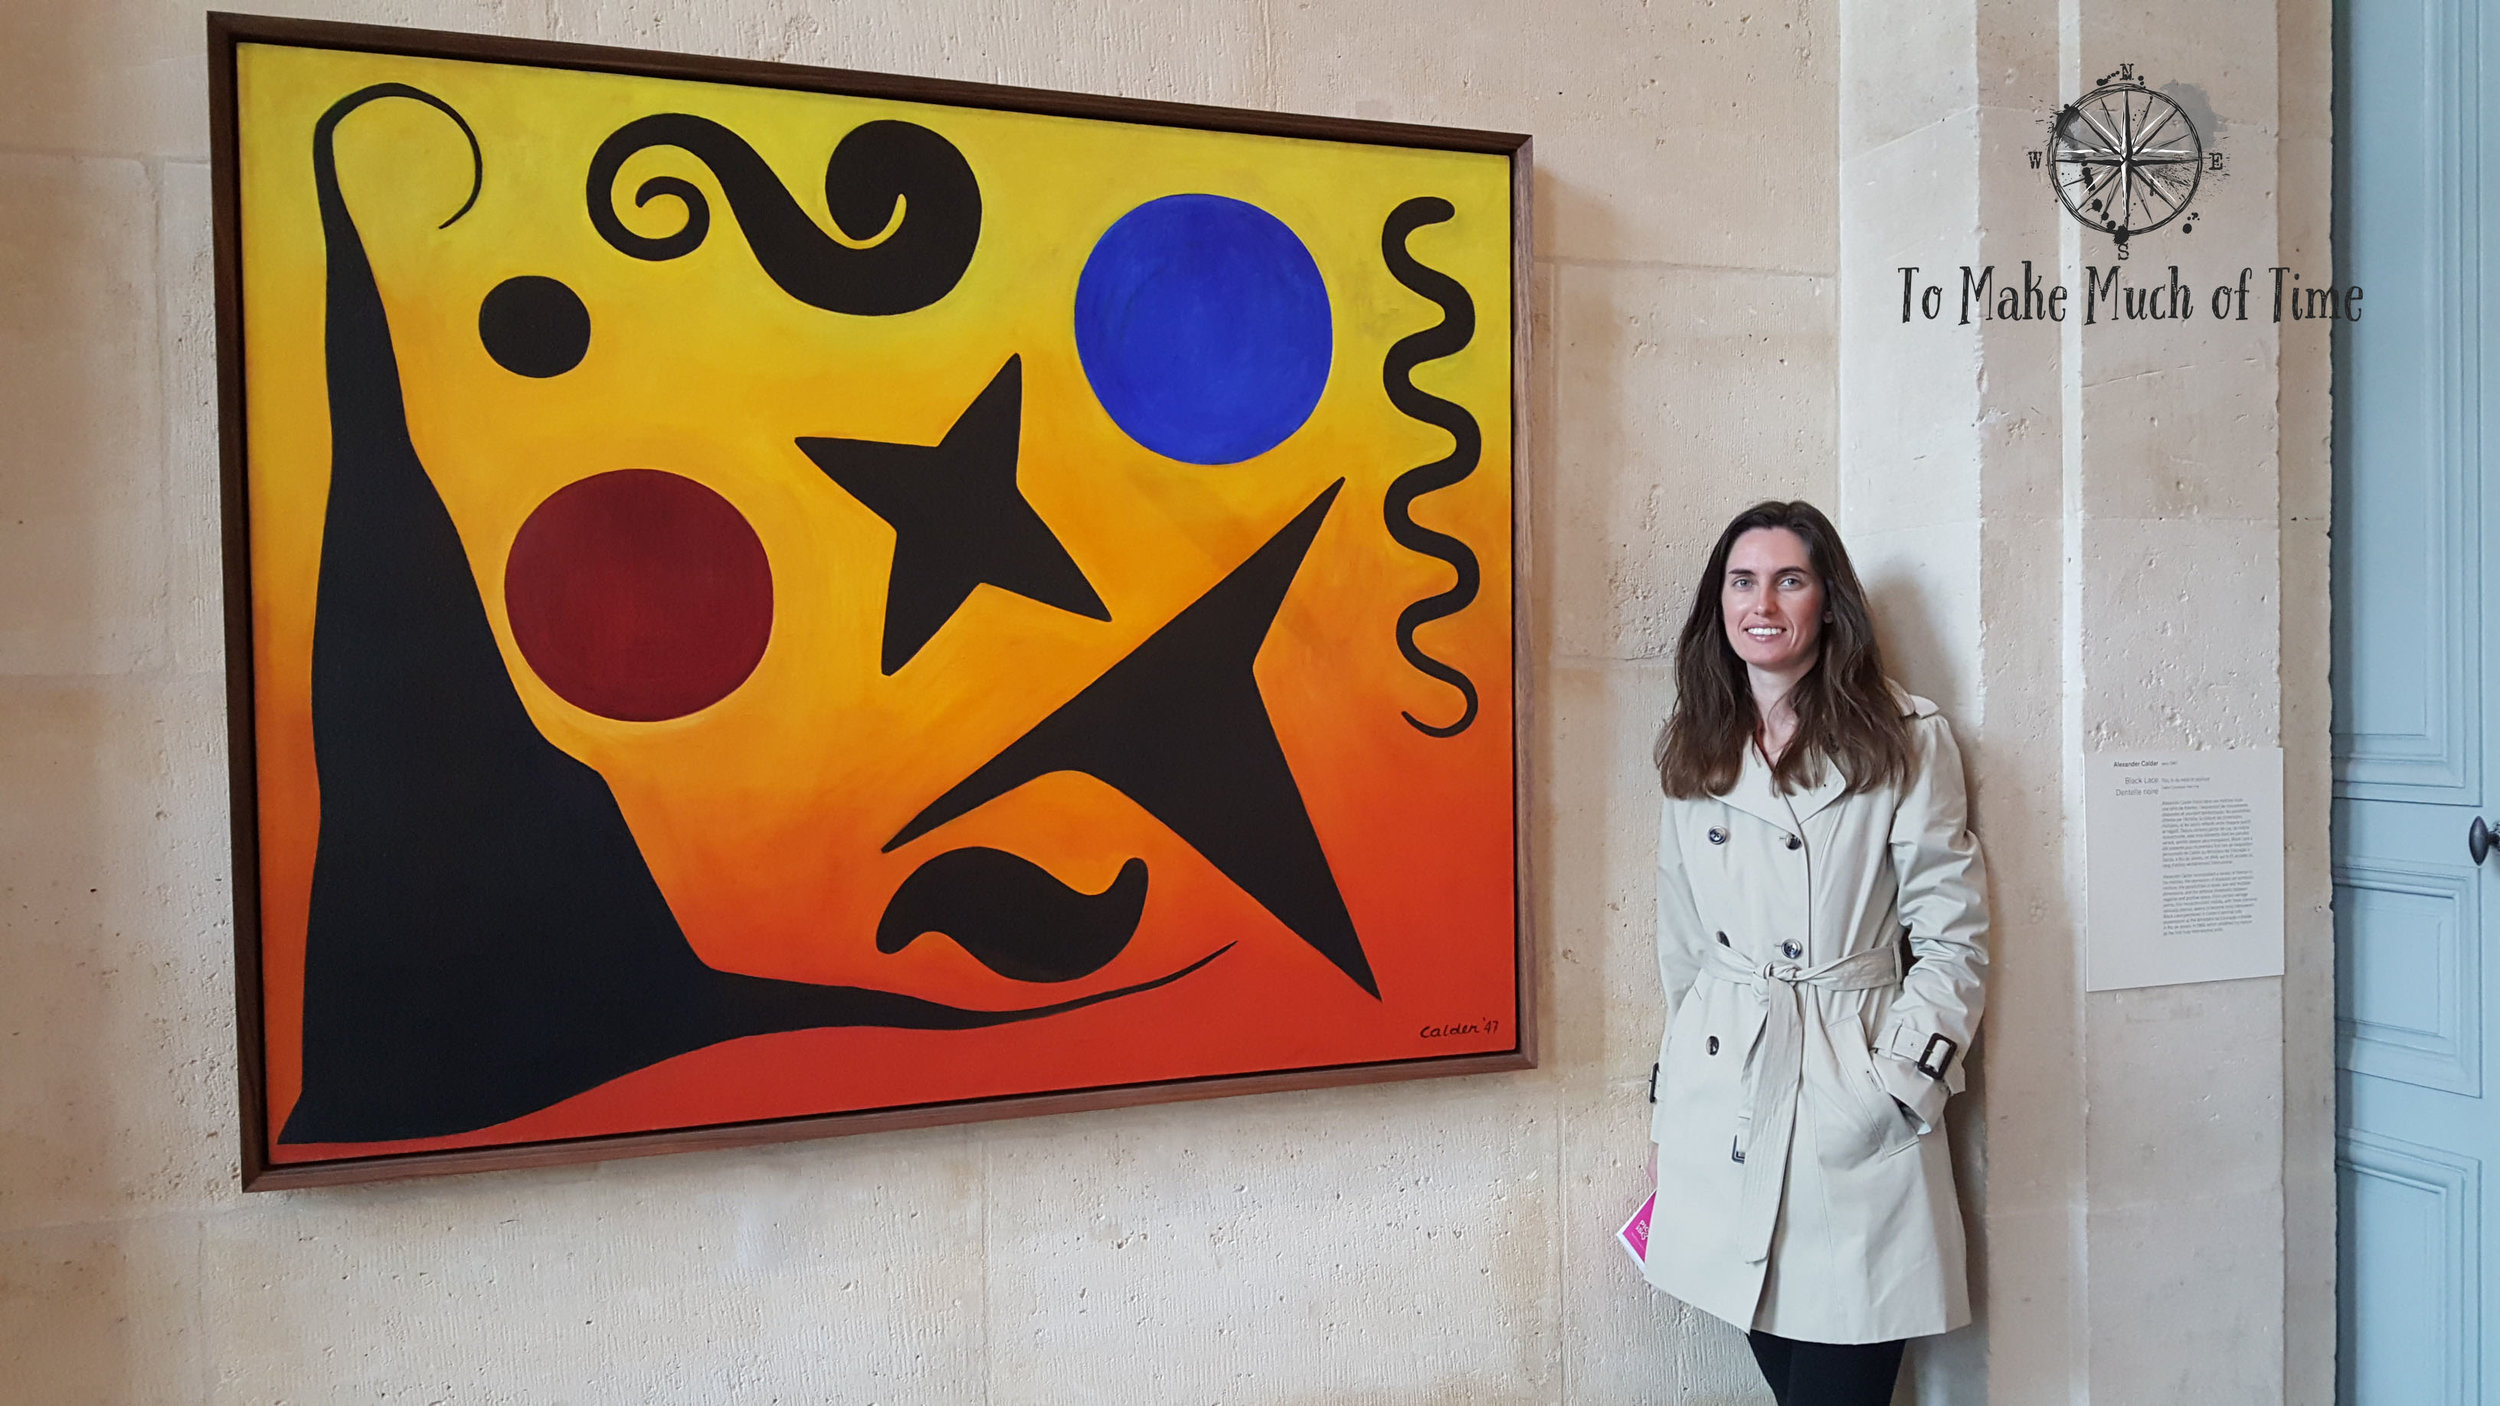 Lindsey really liked this artwork by Alexander Calder.